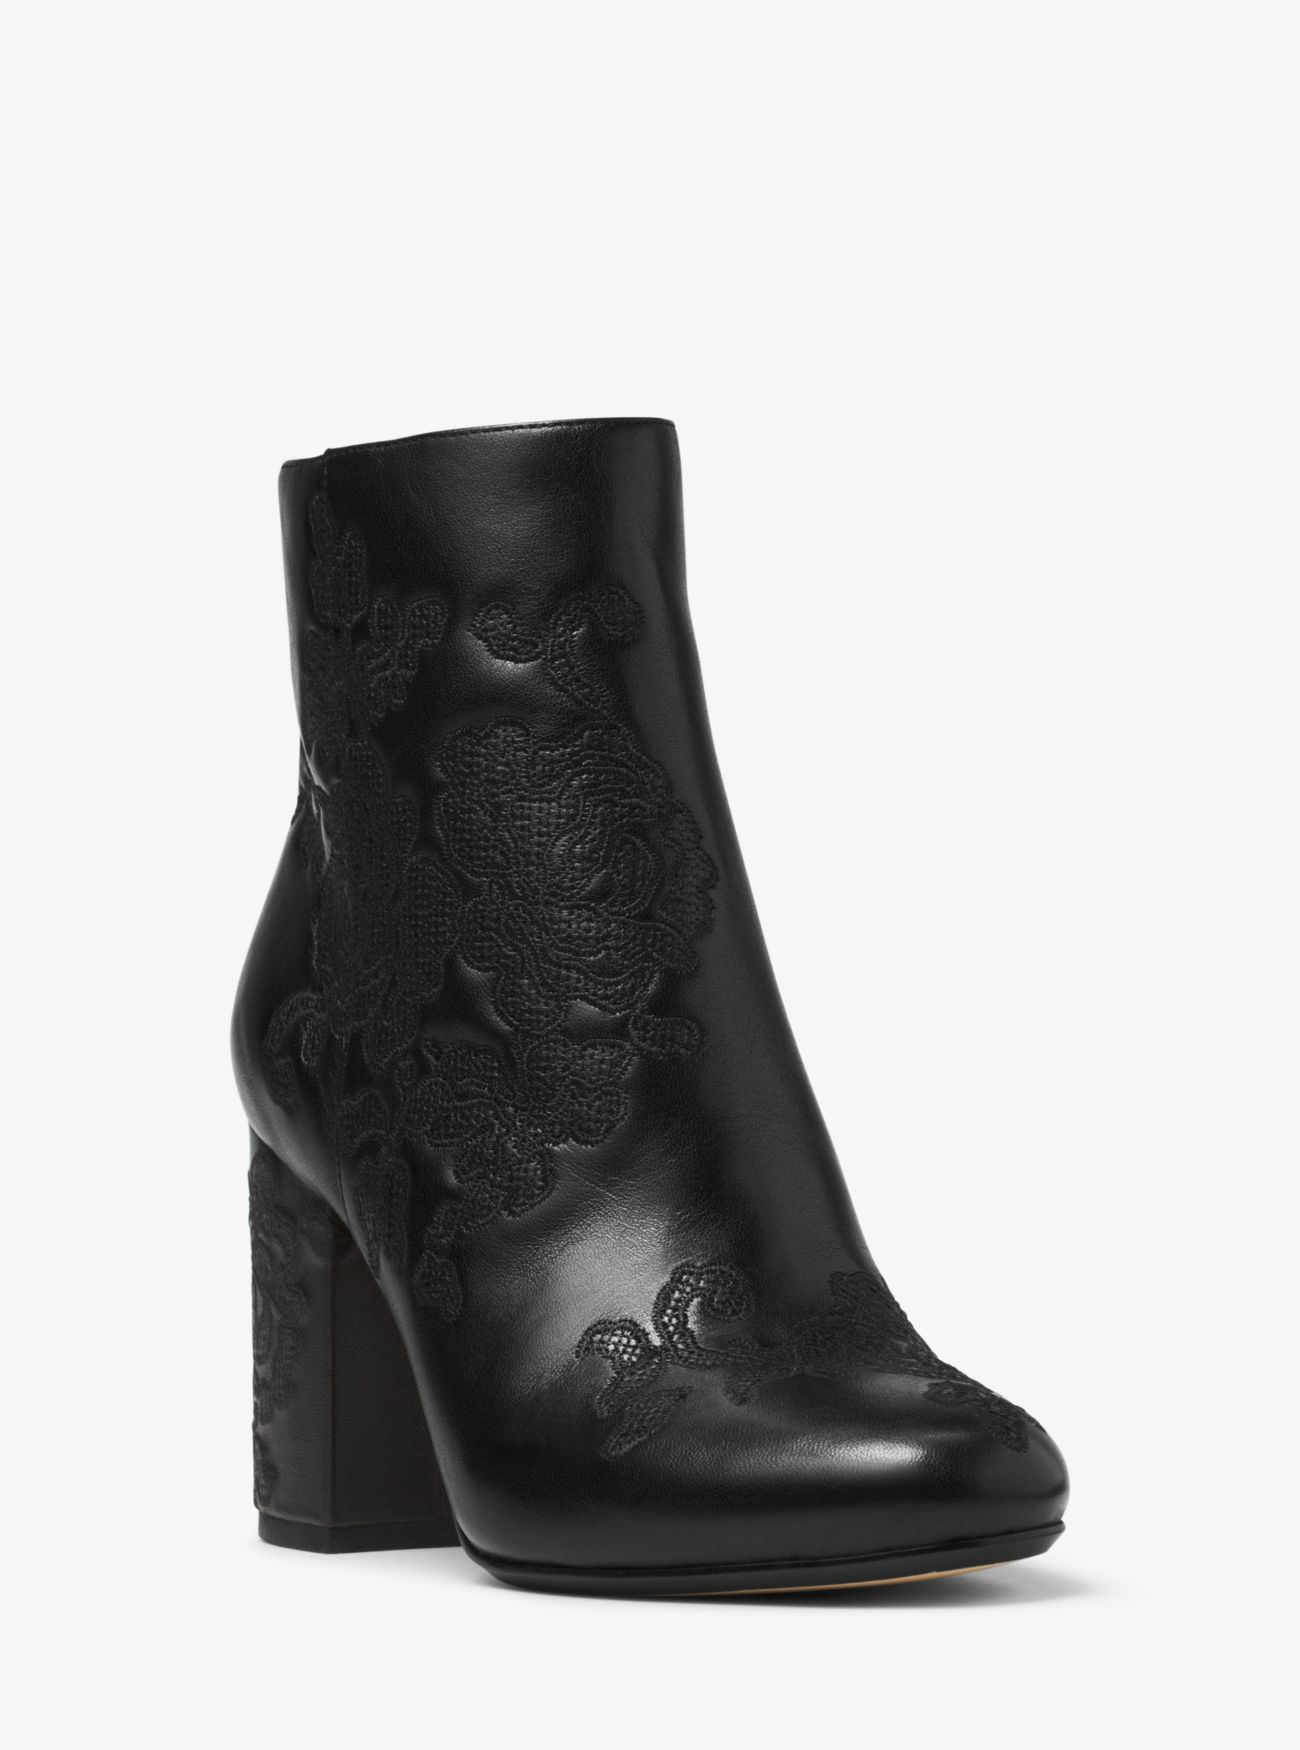 Women&39s Designer Suede and Leather Boots | Michael Kors